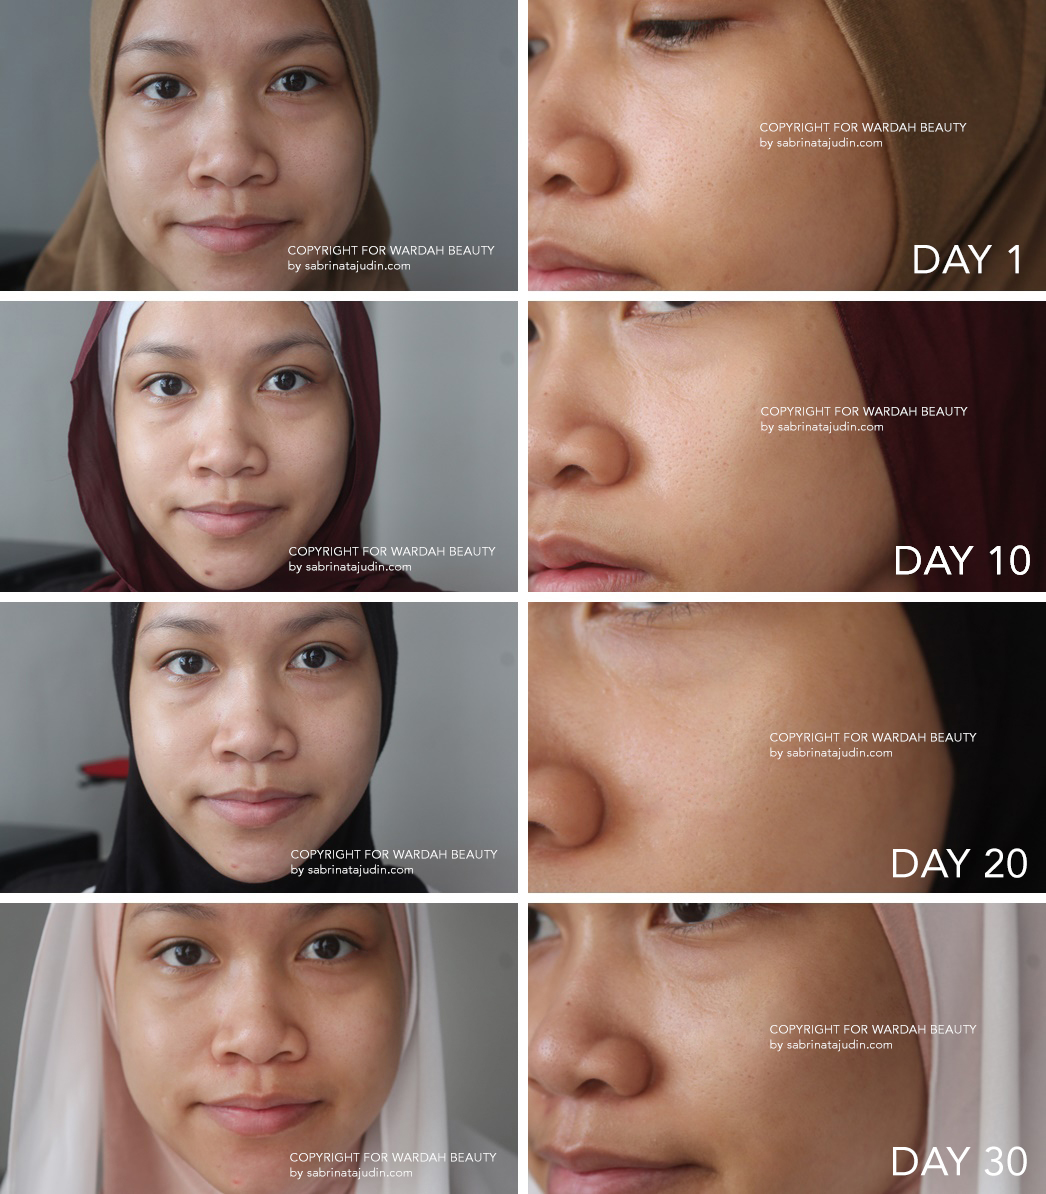 Wardah White Secret Skincare Review 30 Days Verdict Inirahasiaku Night Cream Range Is Not Like Your Typical Whitening Skin Care Product That Has Harsh Chemical Such As Mercury It Promises To Give You A Brighter